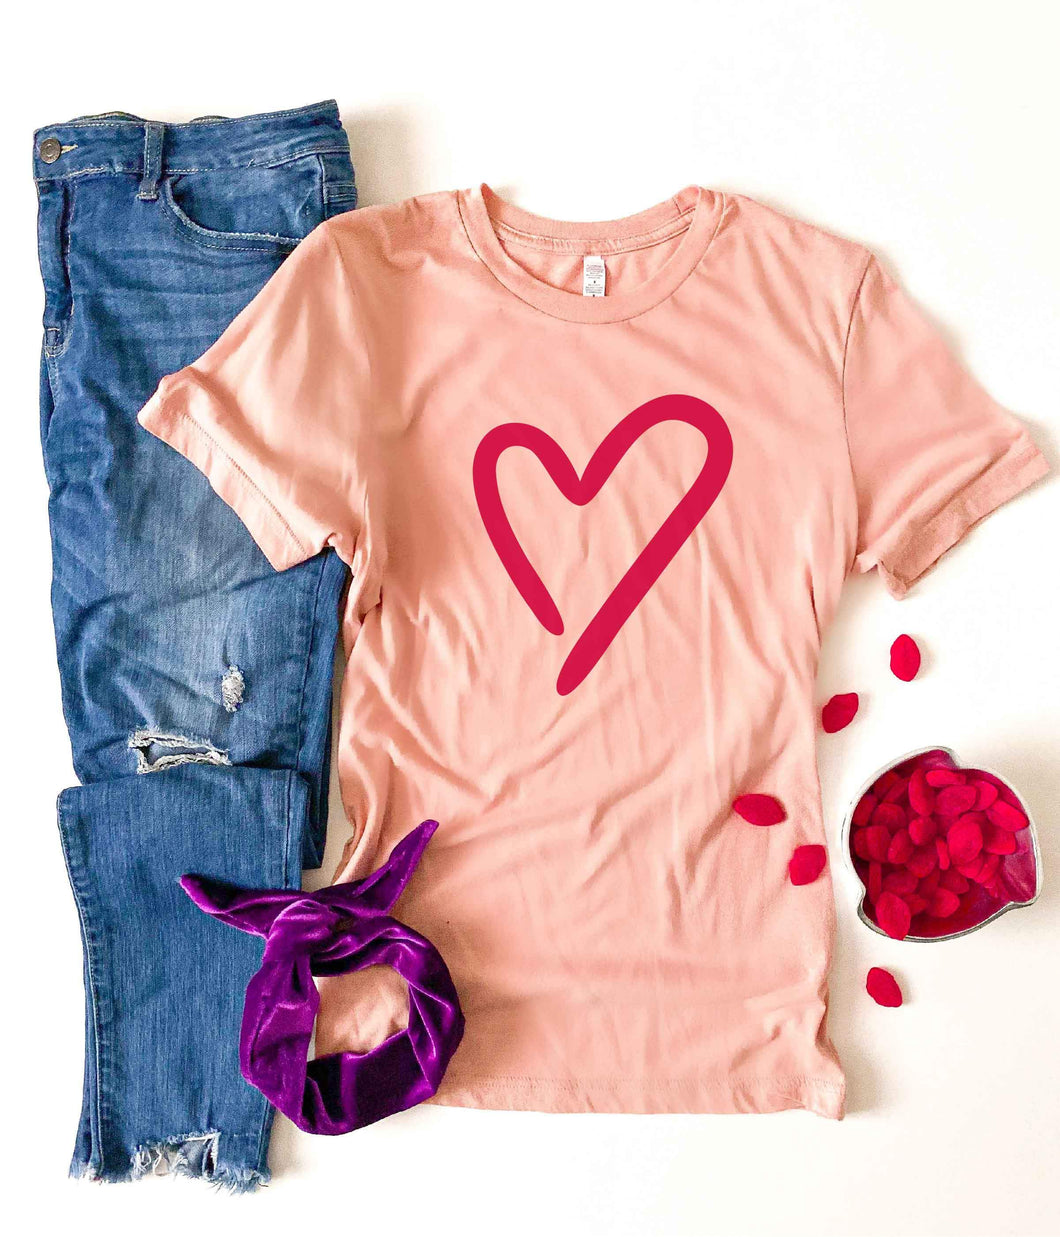 Heart tee Short sleeve valentines day tee Bella canvas 3001 XS Heather peach